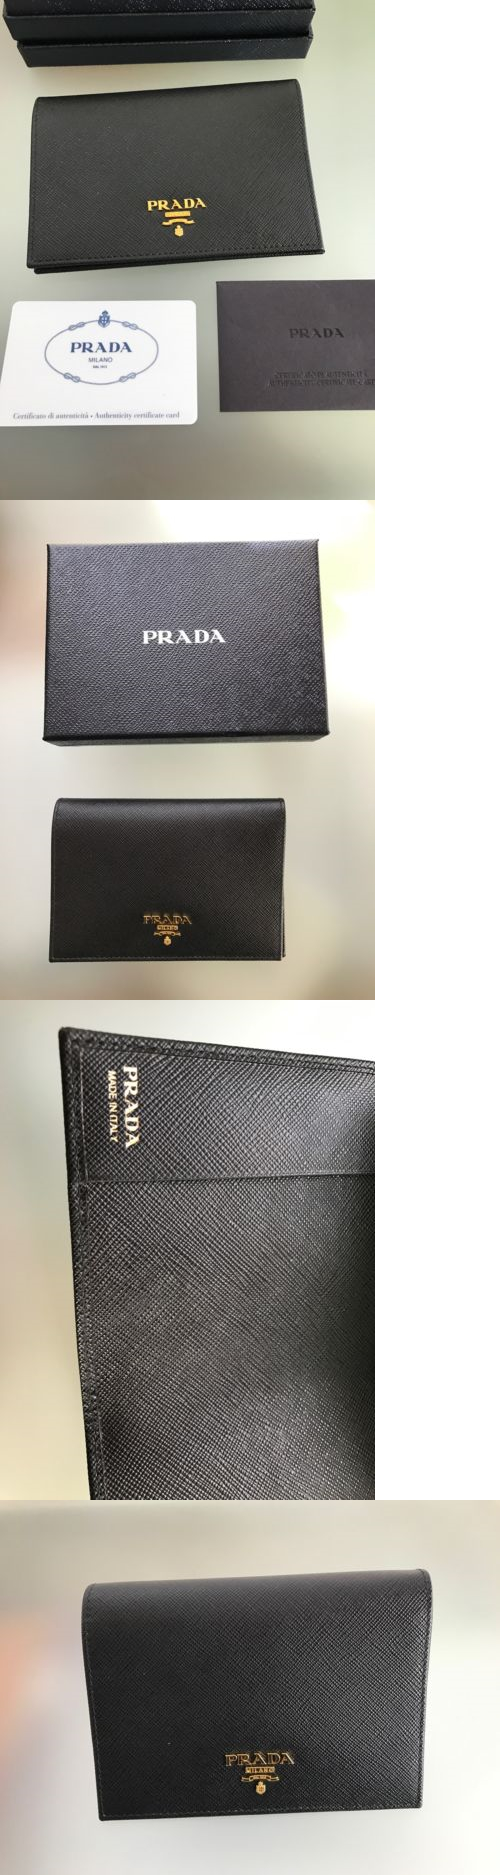 ID and Document Holders 169279: Prada Passport Case - New With Box -> BUY IT NOW ONLY: $435 on eBay!